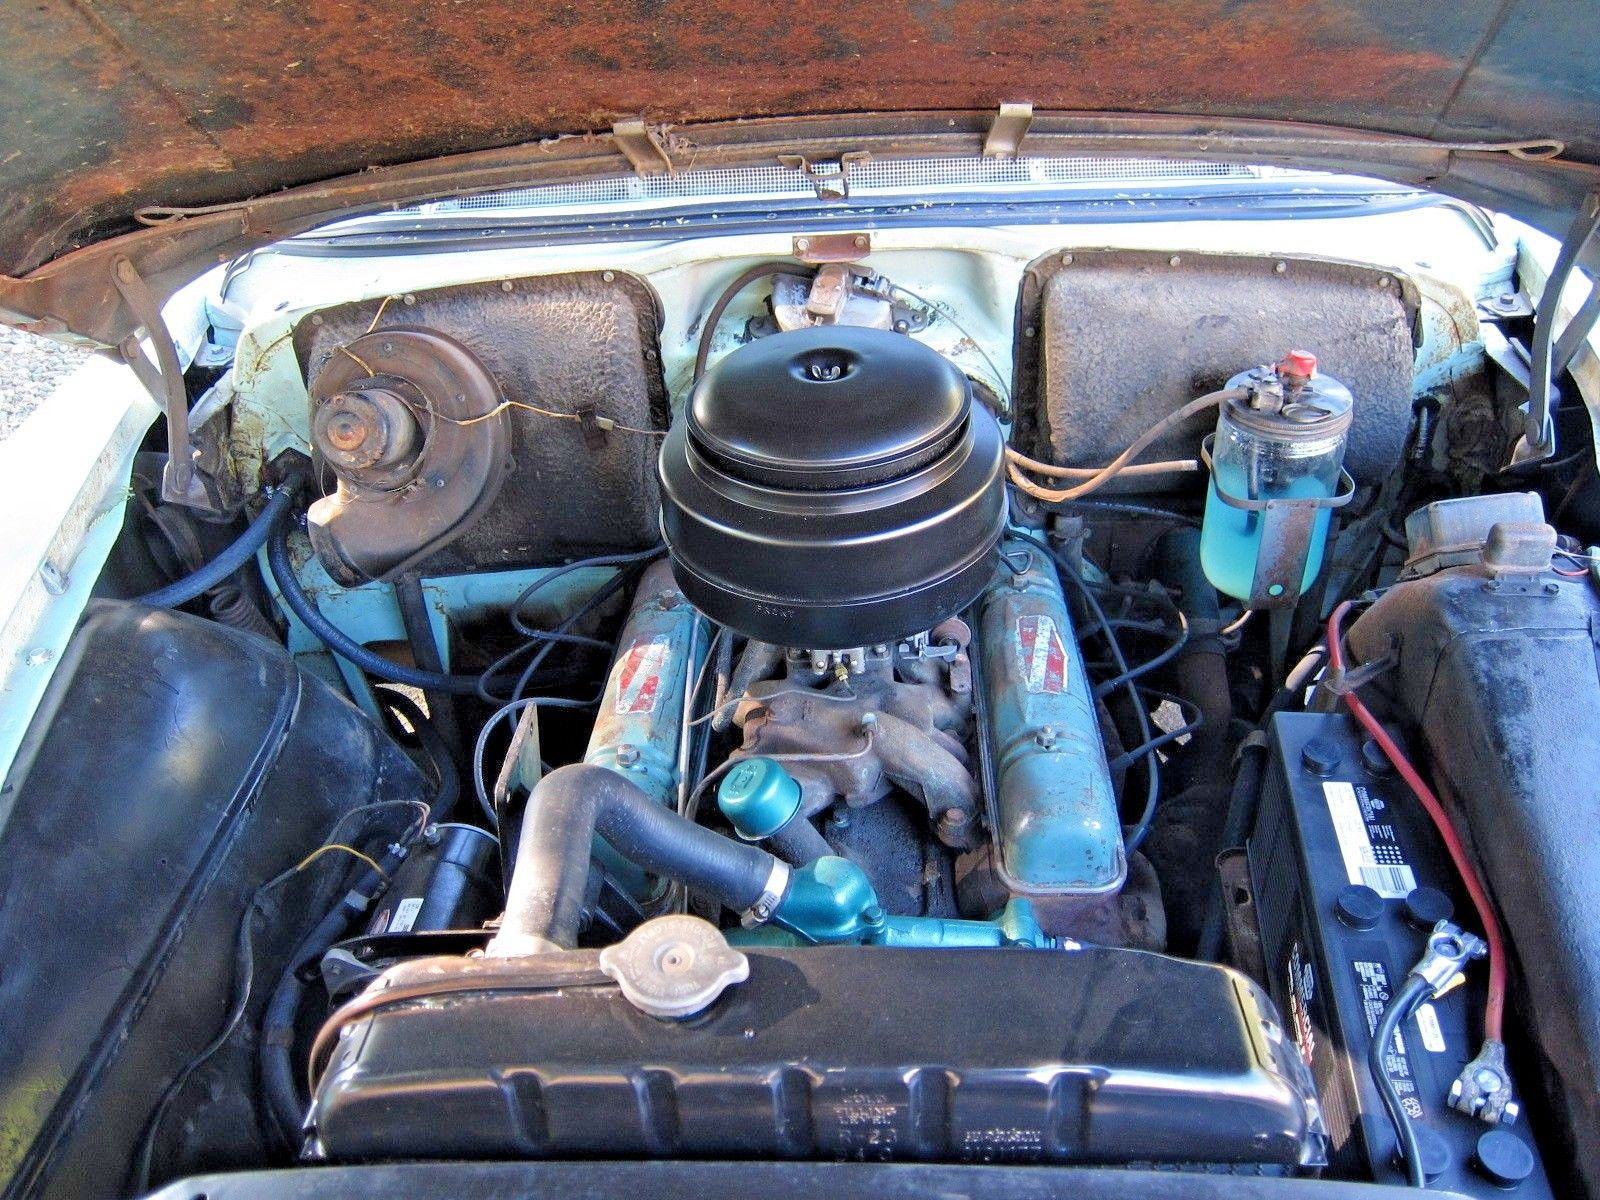 1954 Buick Super Nailhead engine